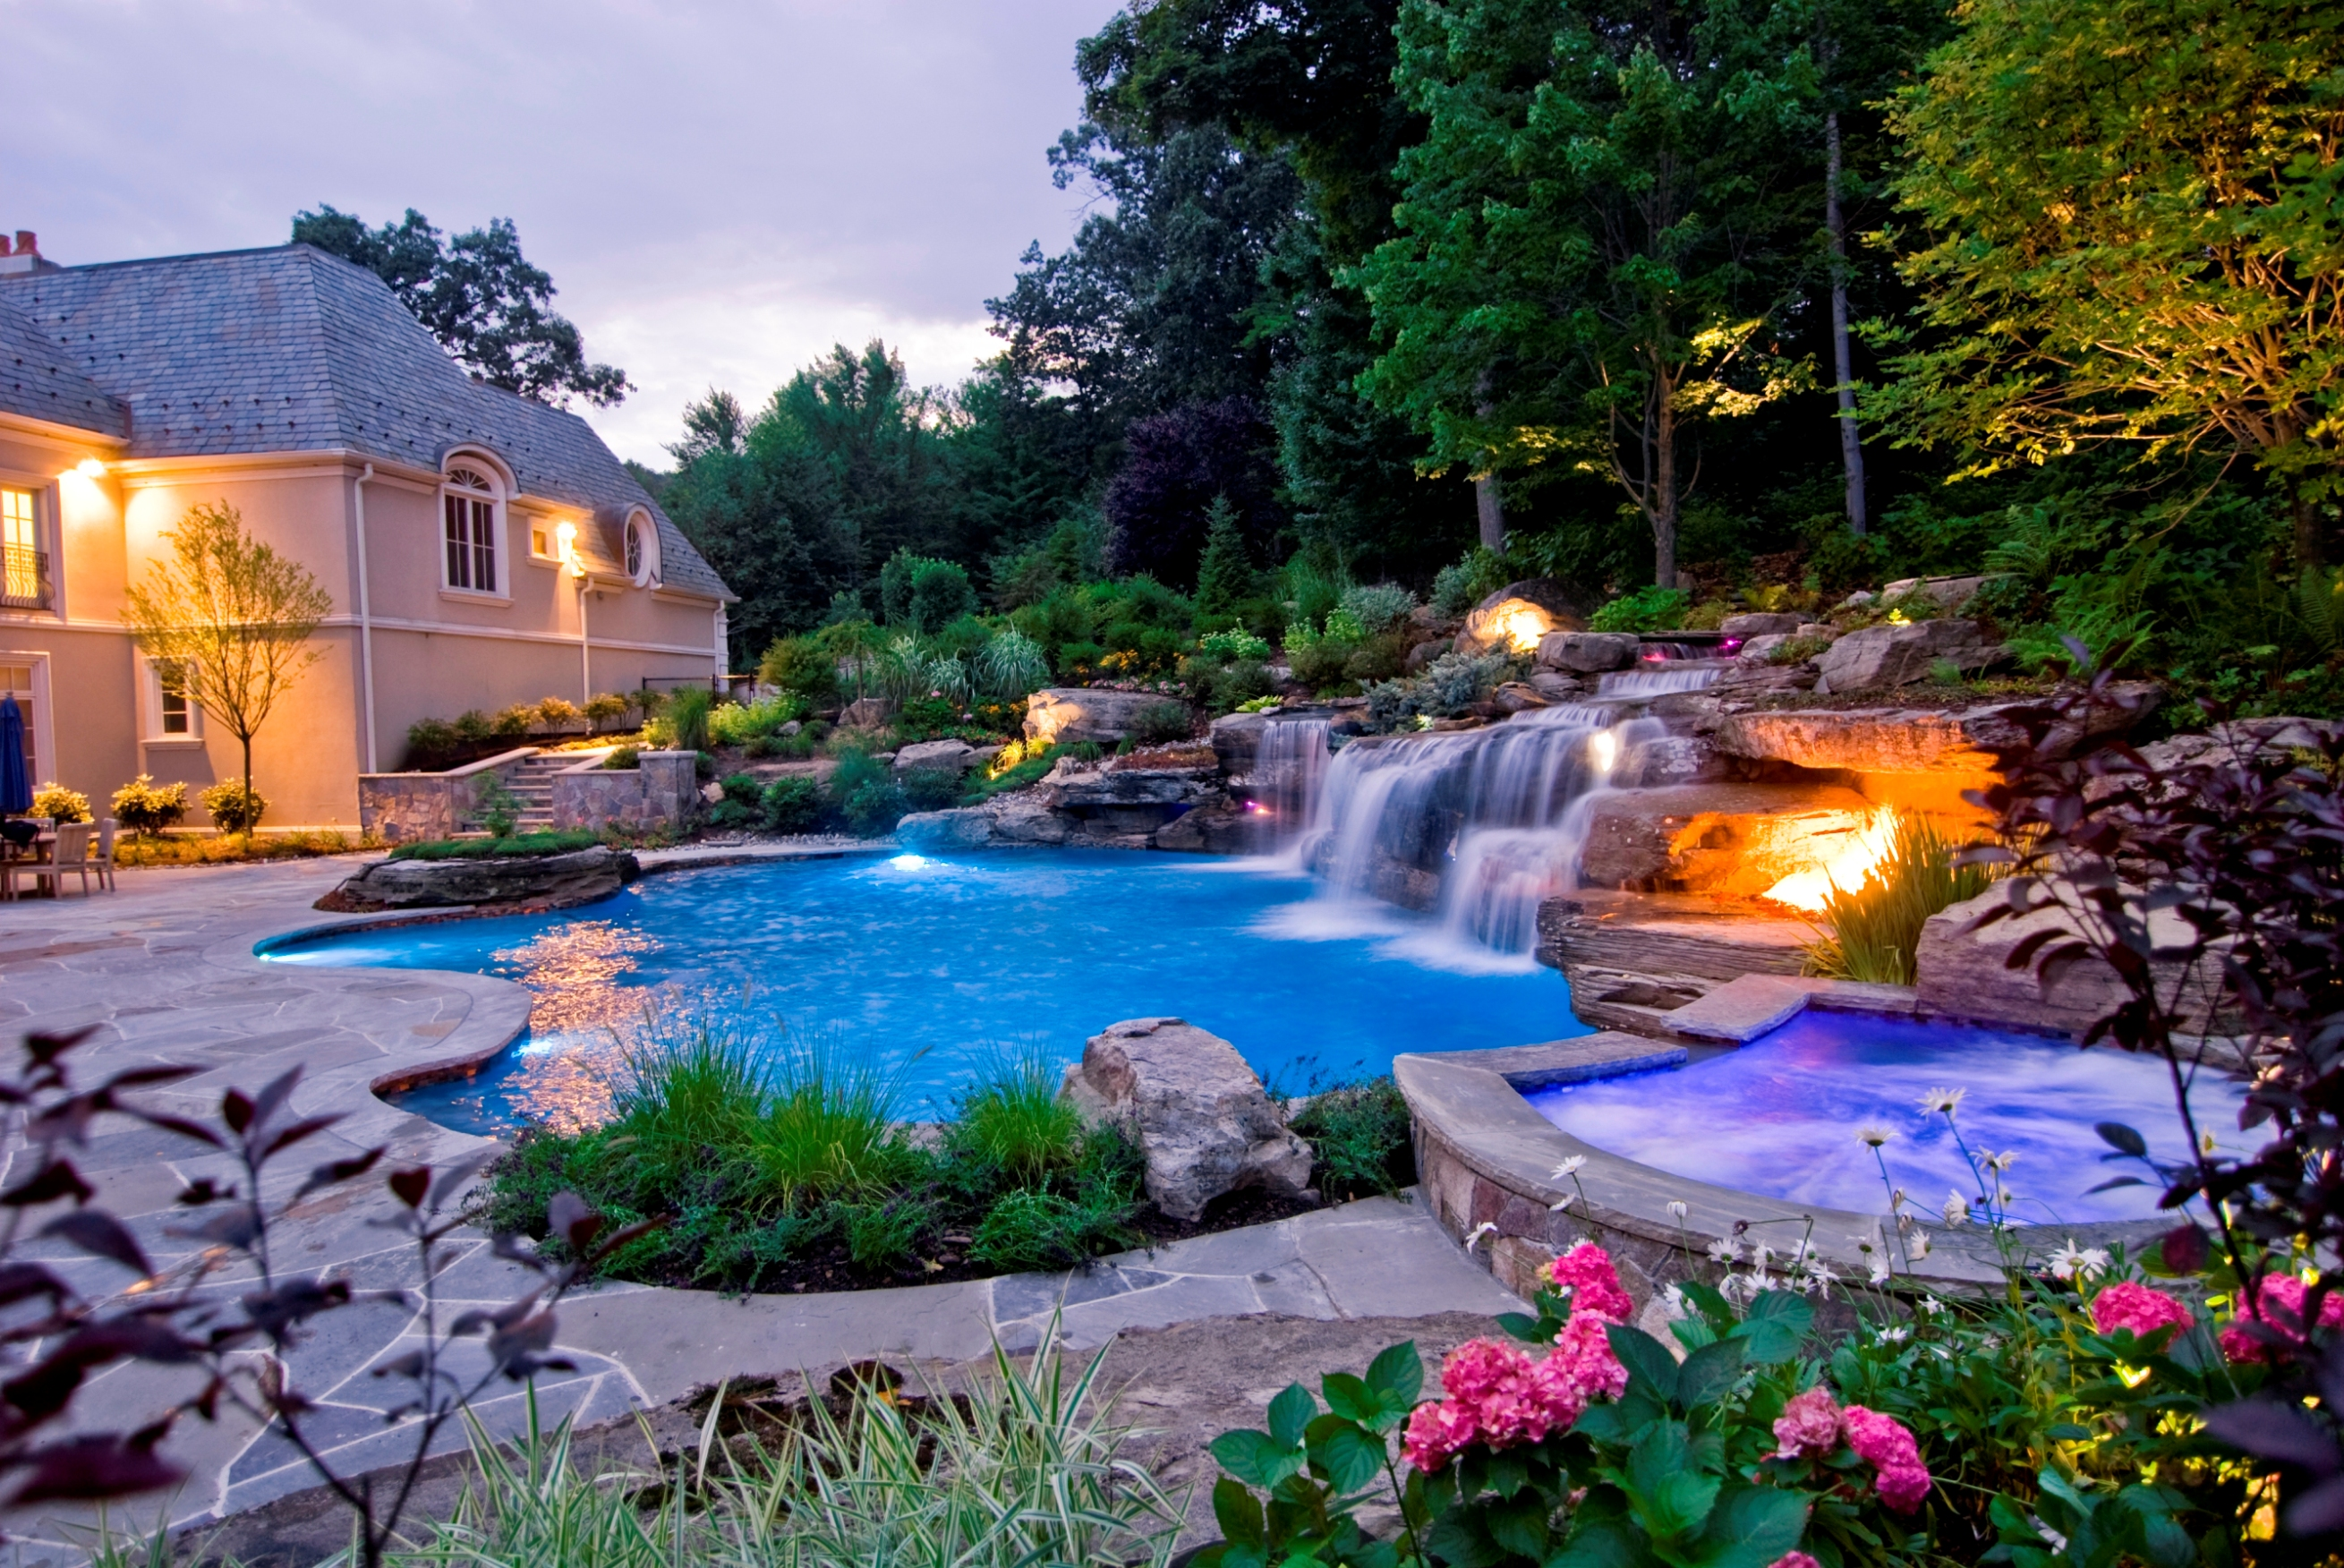 Rolland Asley: Small yard landscaping ideas nj devils on Backyard Inground Pool Landscaping Ideas id=85286